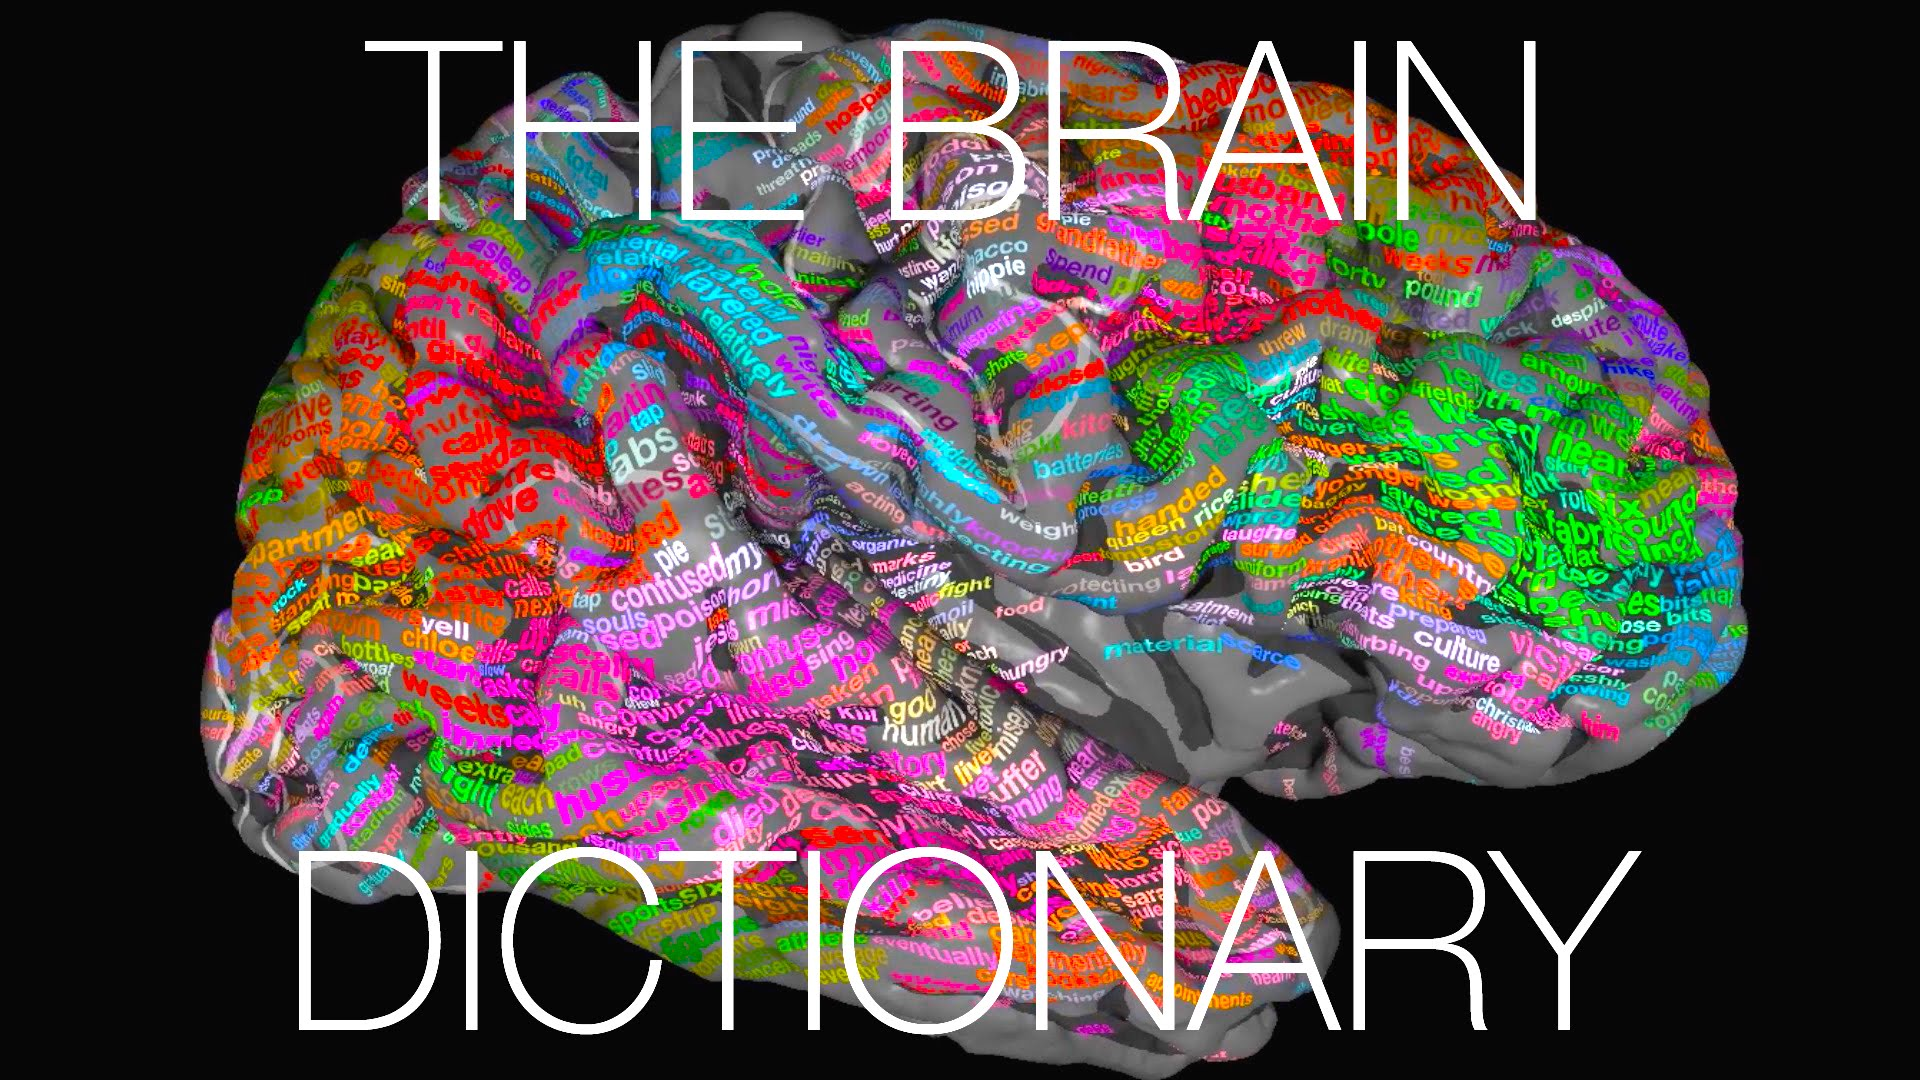 A new atlas of brain shows the where we store our words2